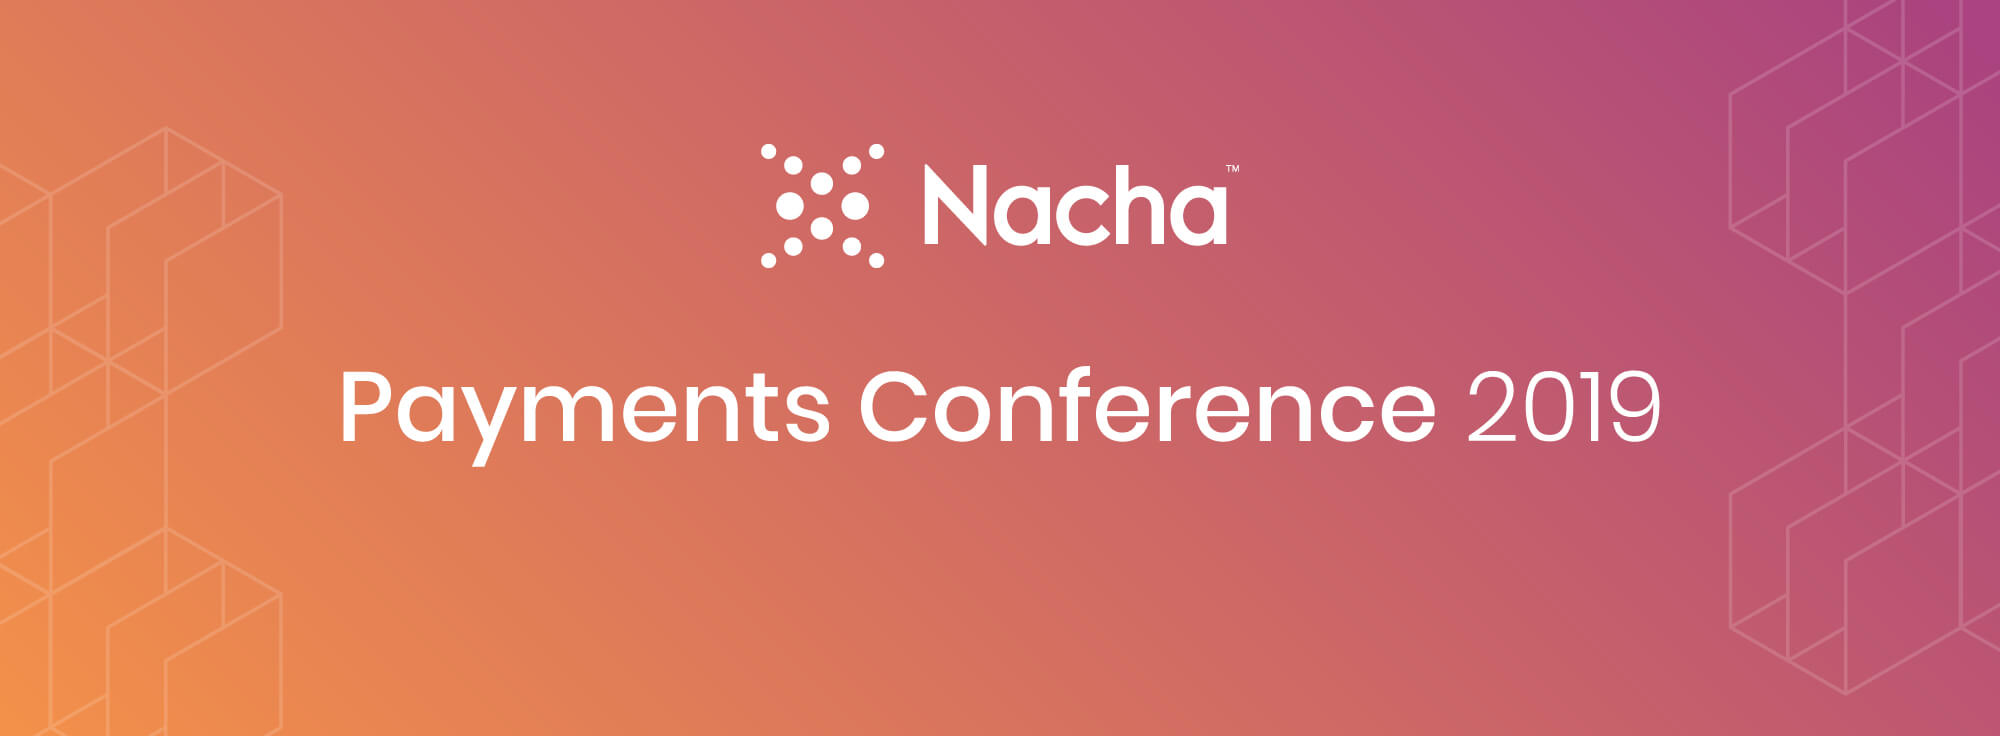 nacha payments conference